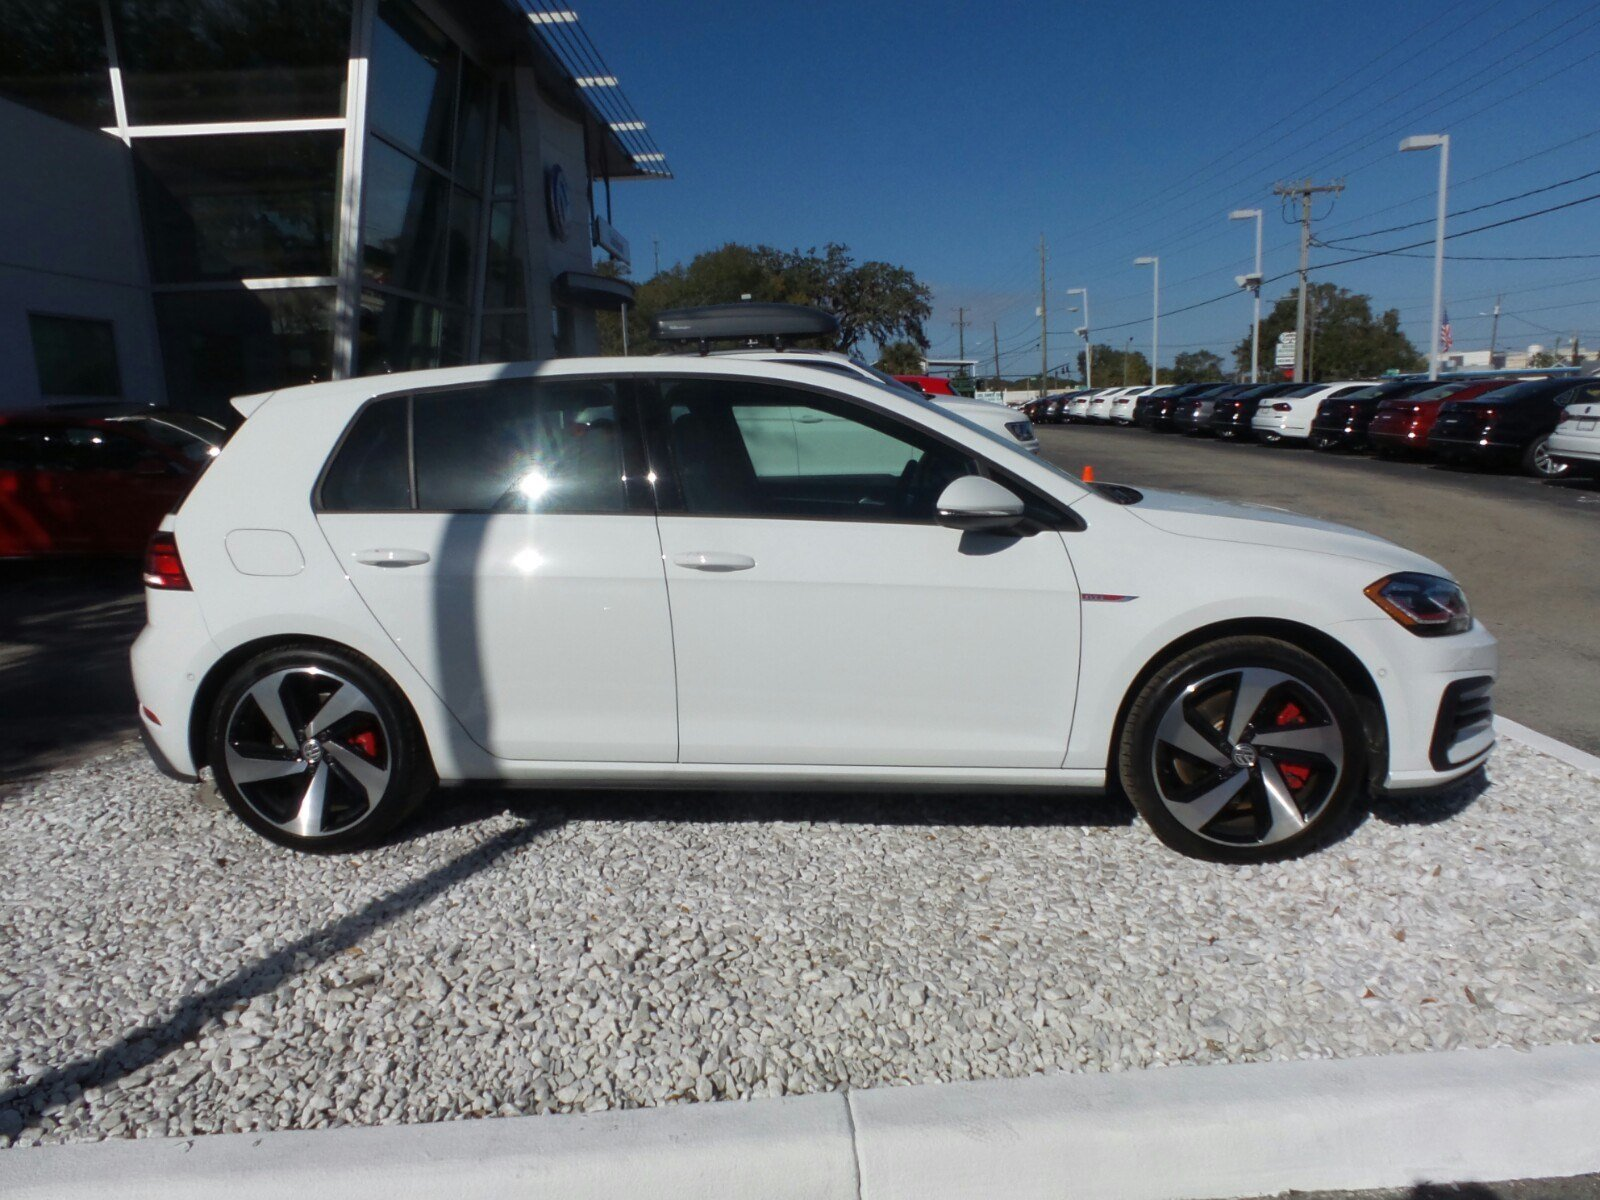 New 2018 Volkswagen Golf GTI 2 0T Autobahn Hatchback in Lakeland